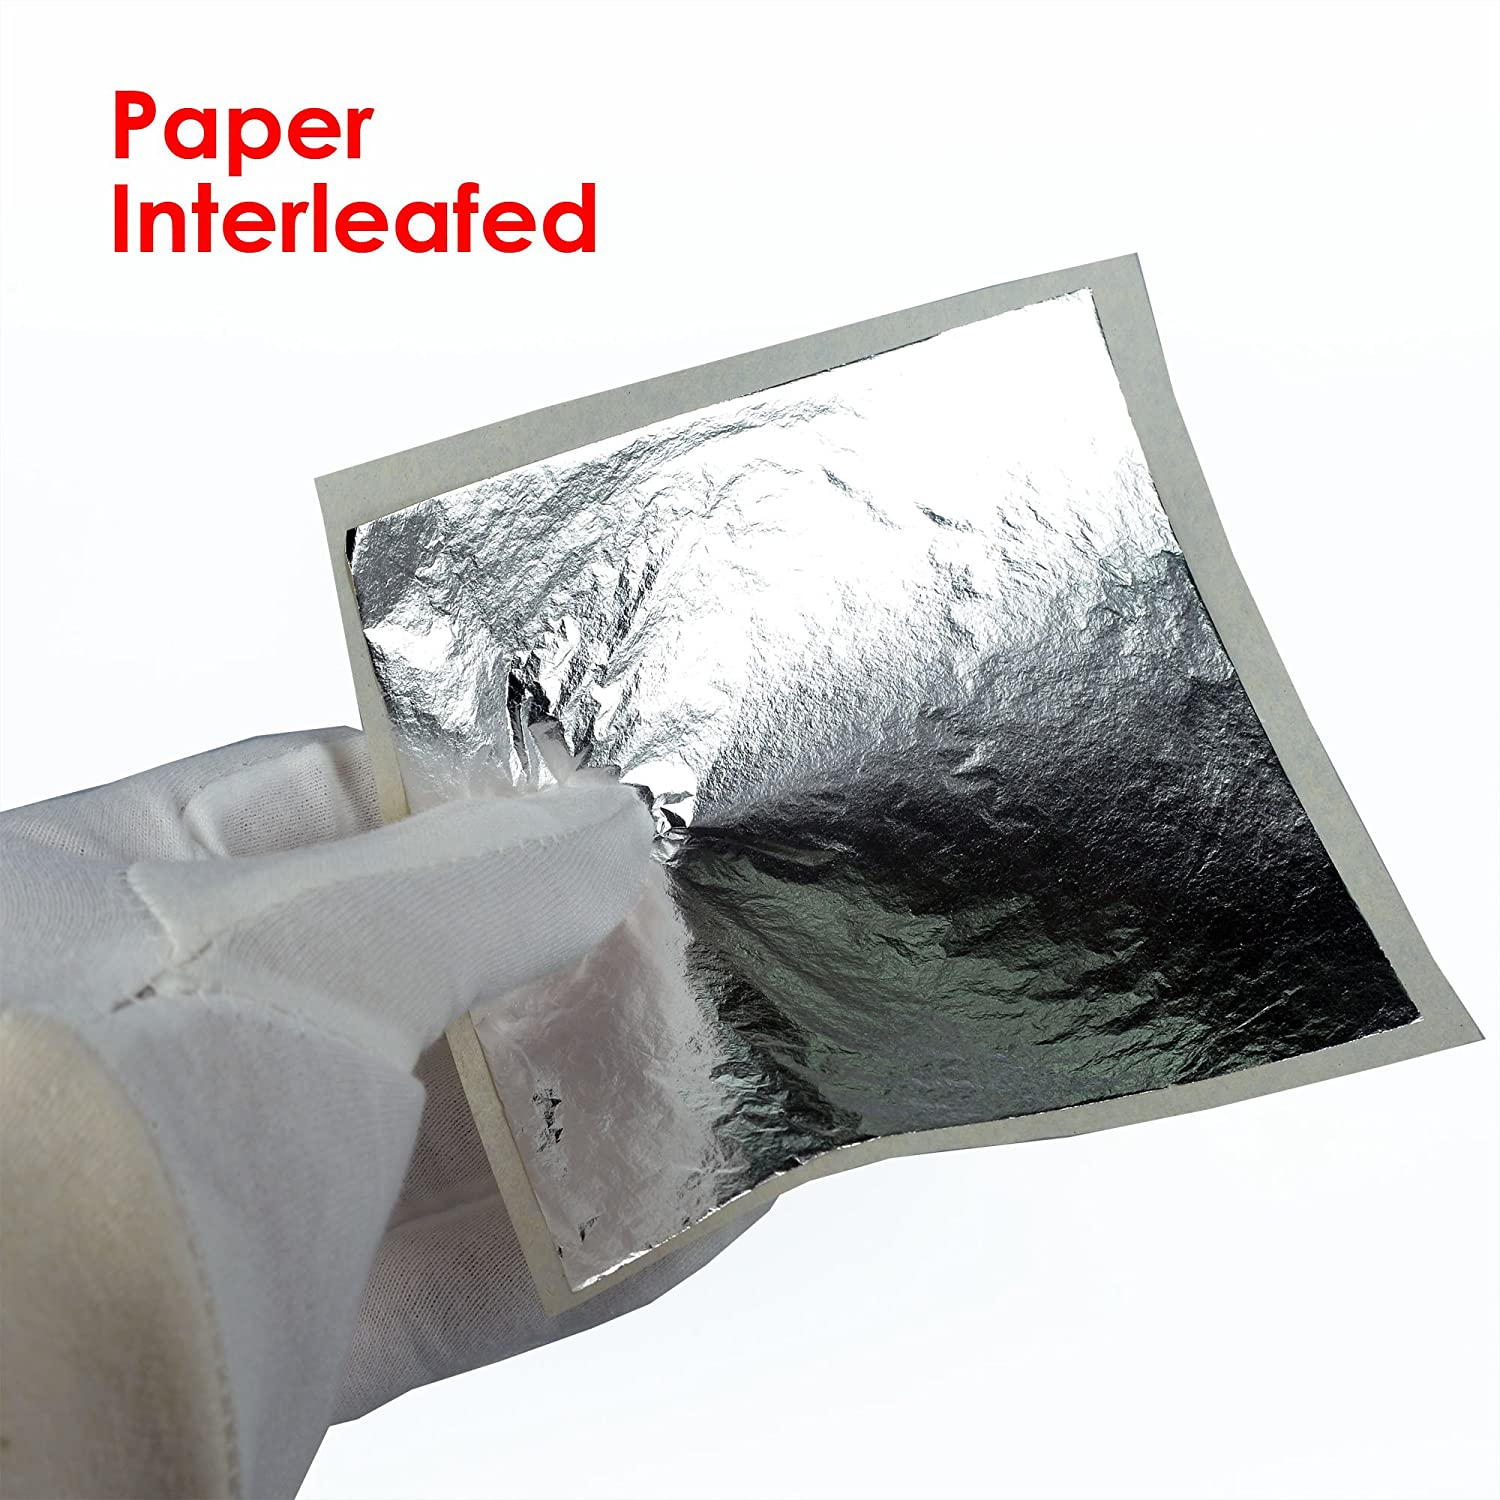 Imitation Silver Leaf 1000 Sheets,16cm Interleaved